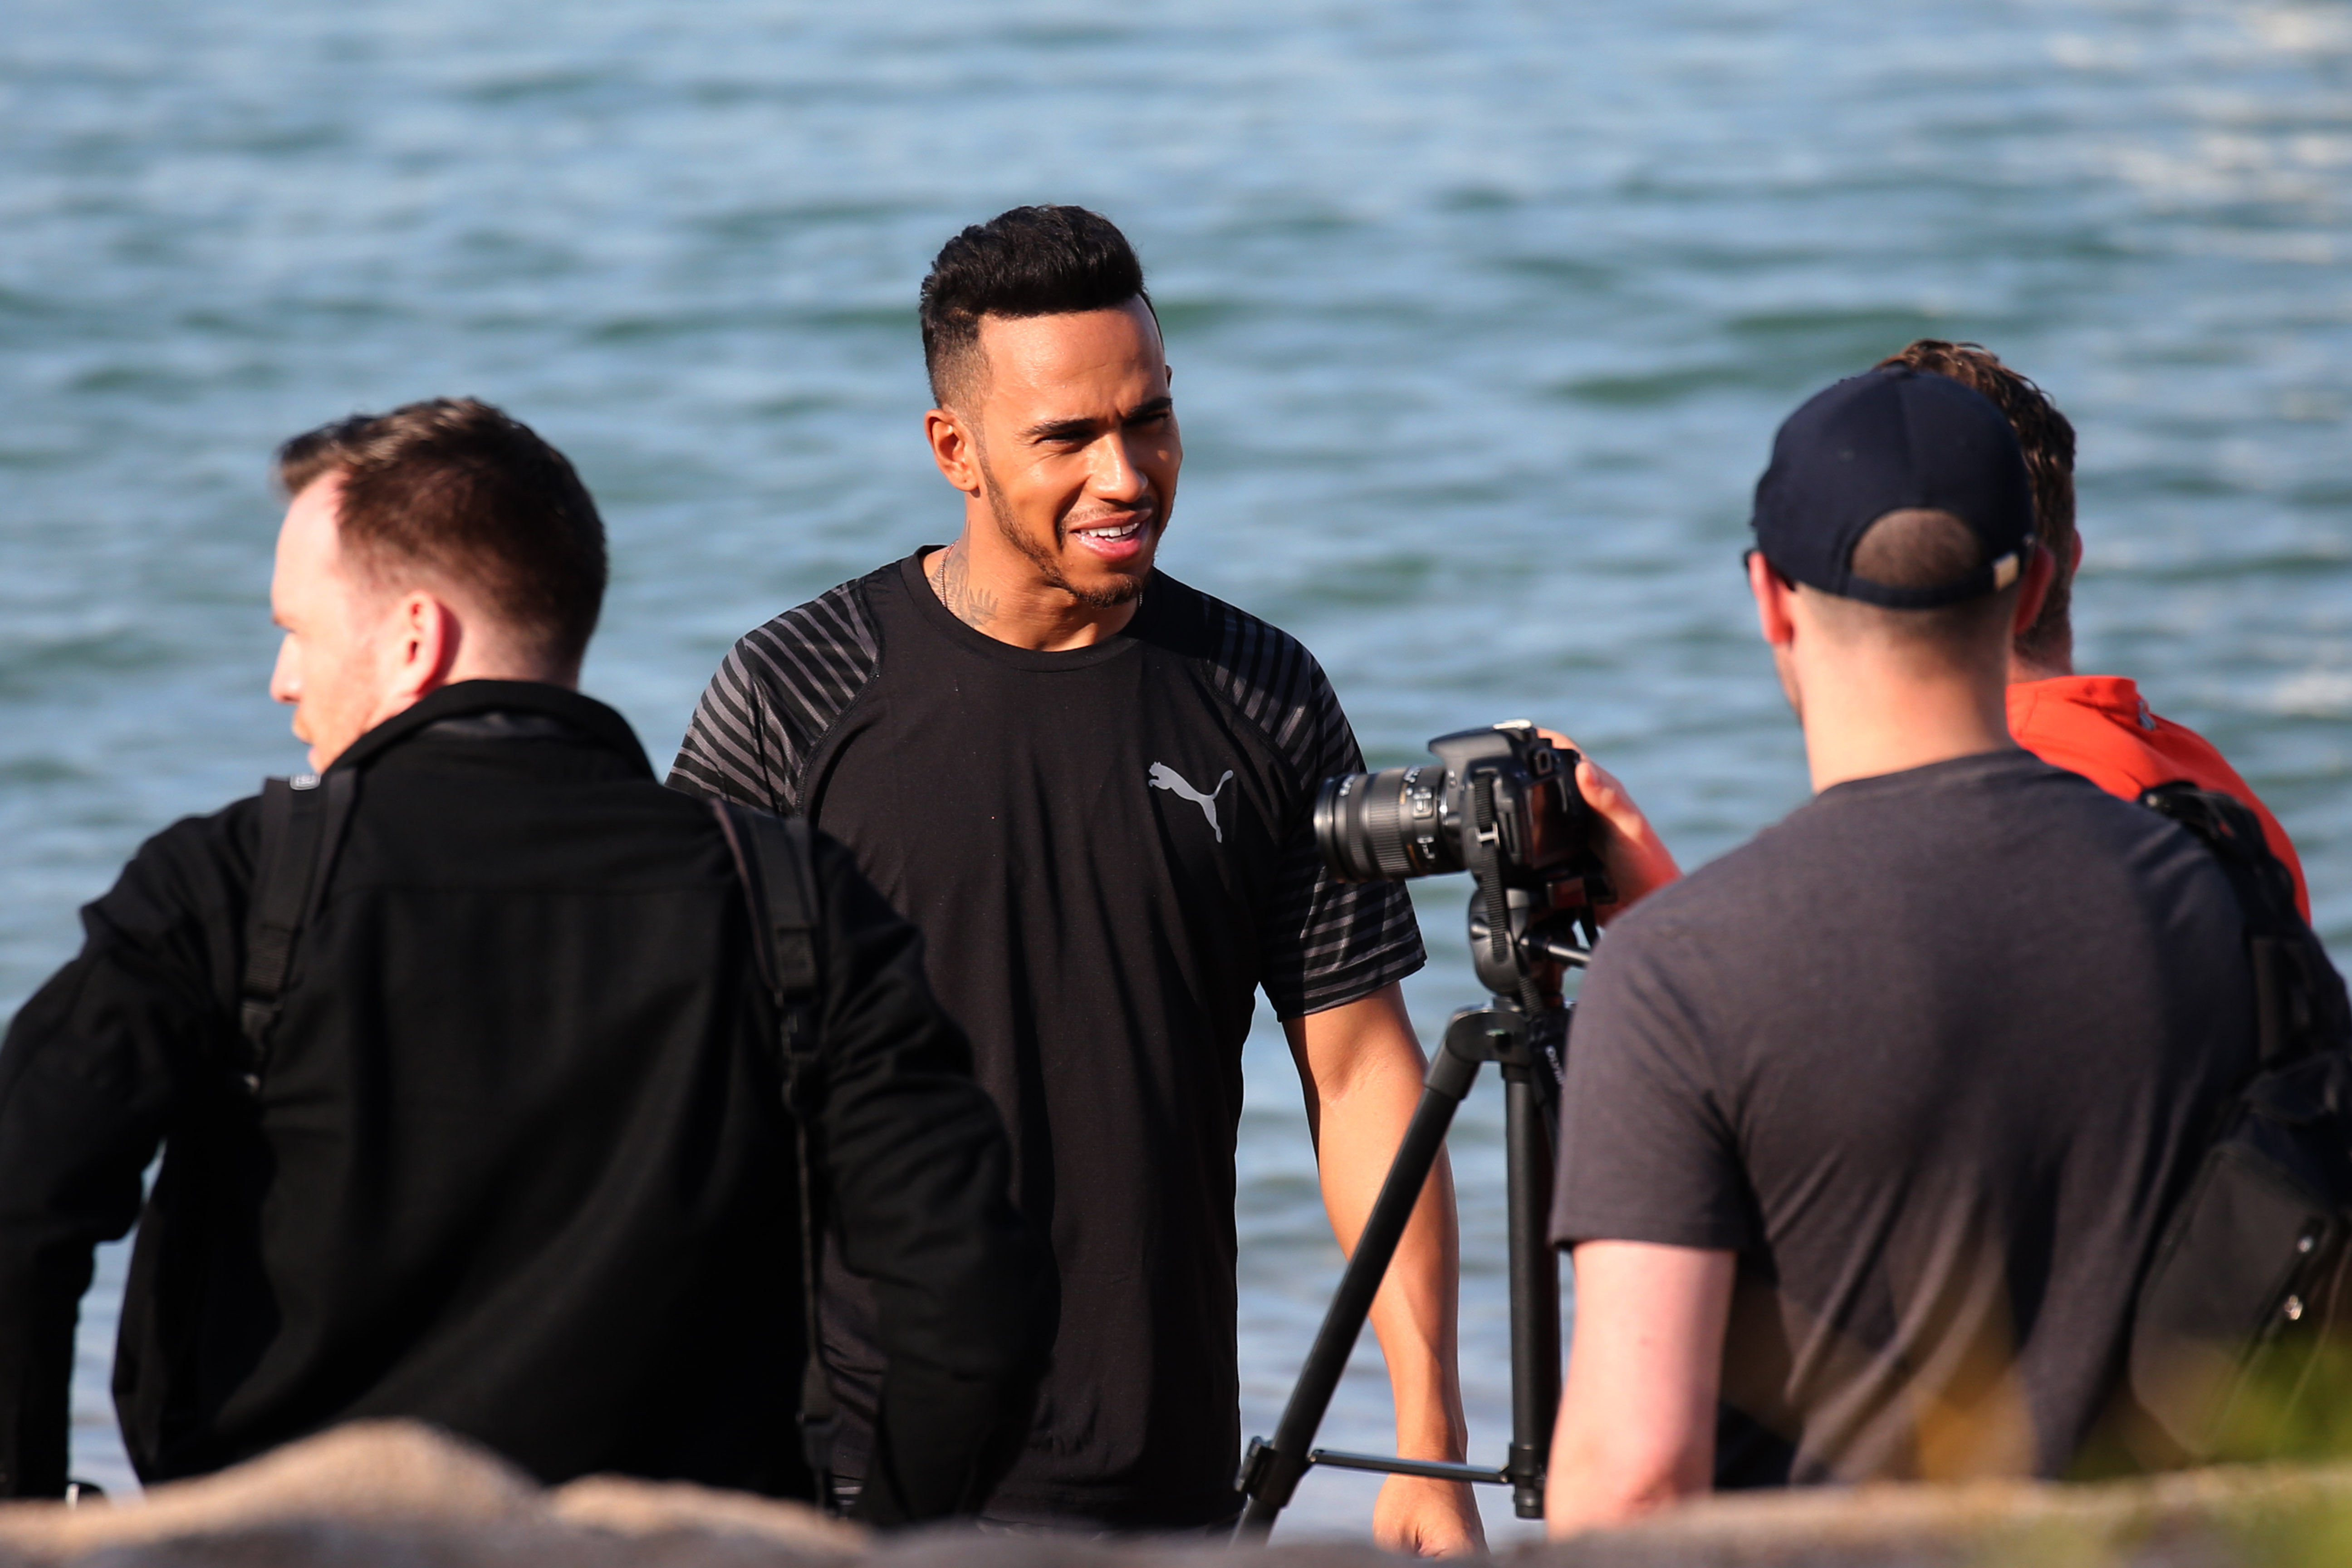 Formula 1 Star Lewis Hamilton's Luxury Spending Is Just a Small Dent in His Huge Net Worth